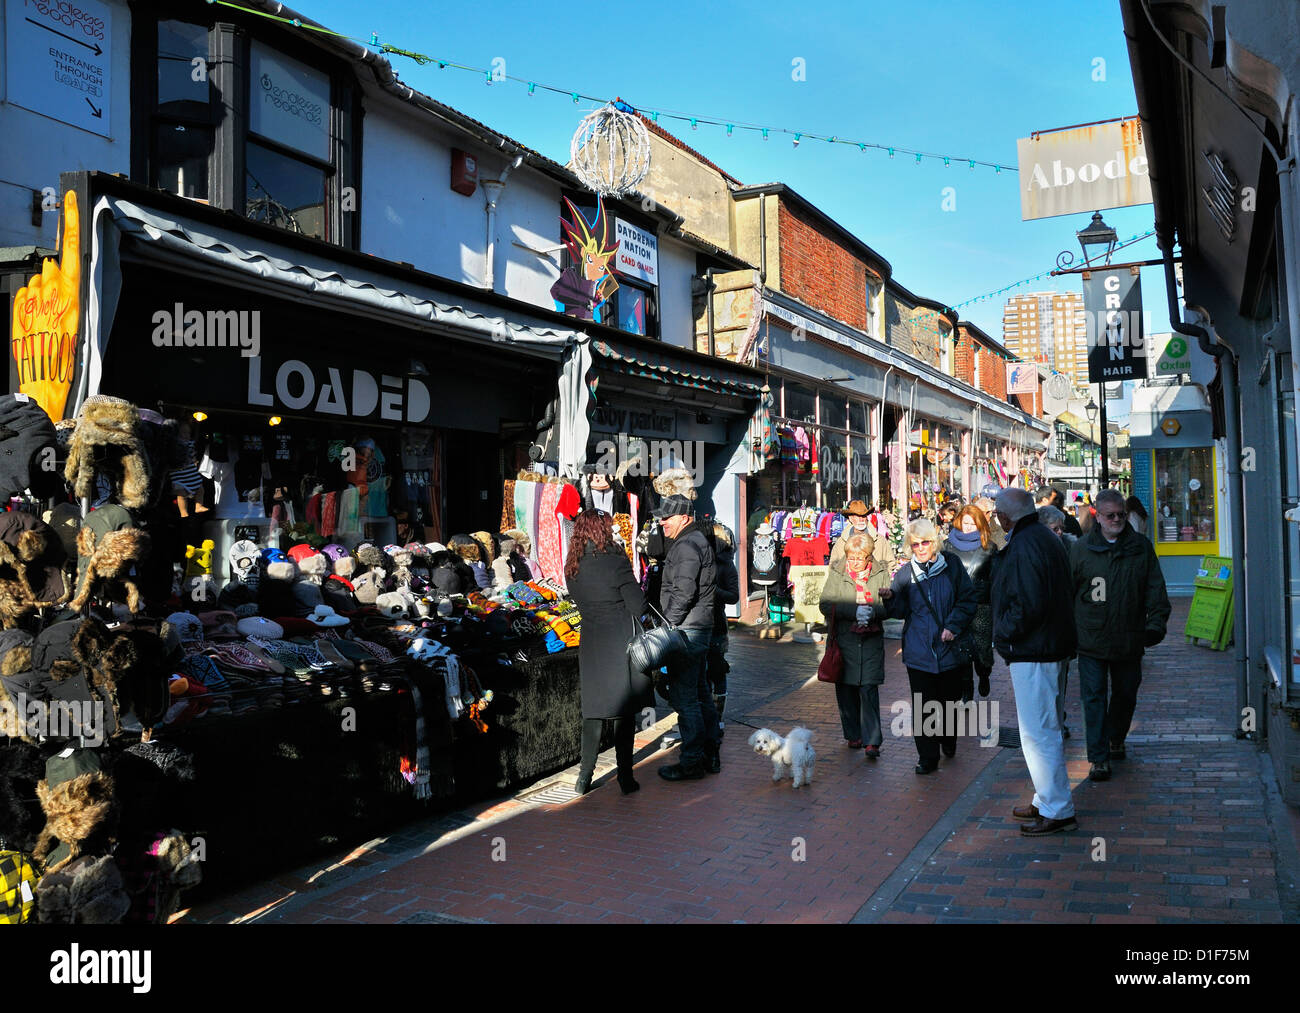 North Laines, Brighton, East Sussex, UK - Stock Image